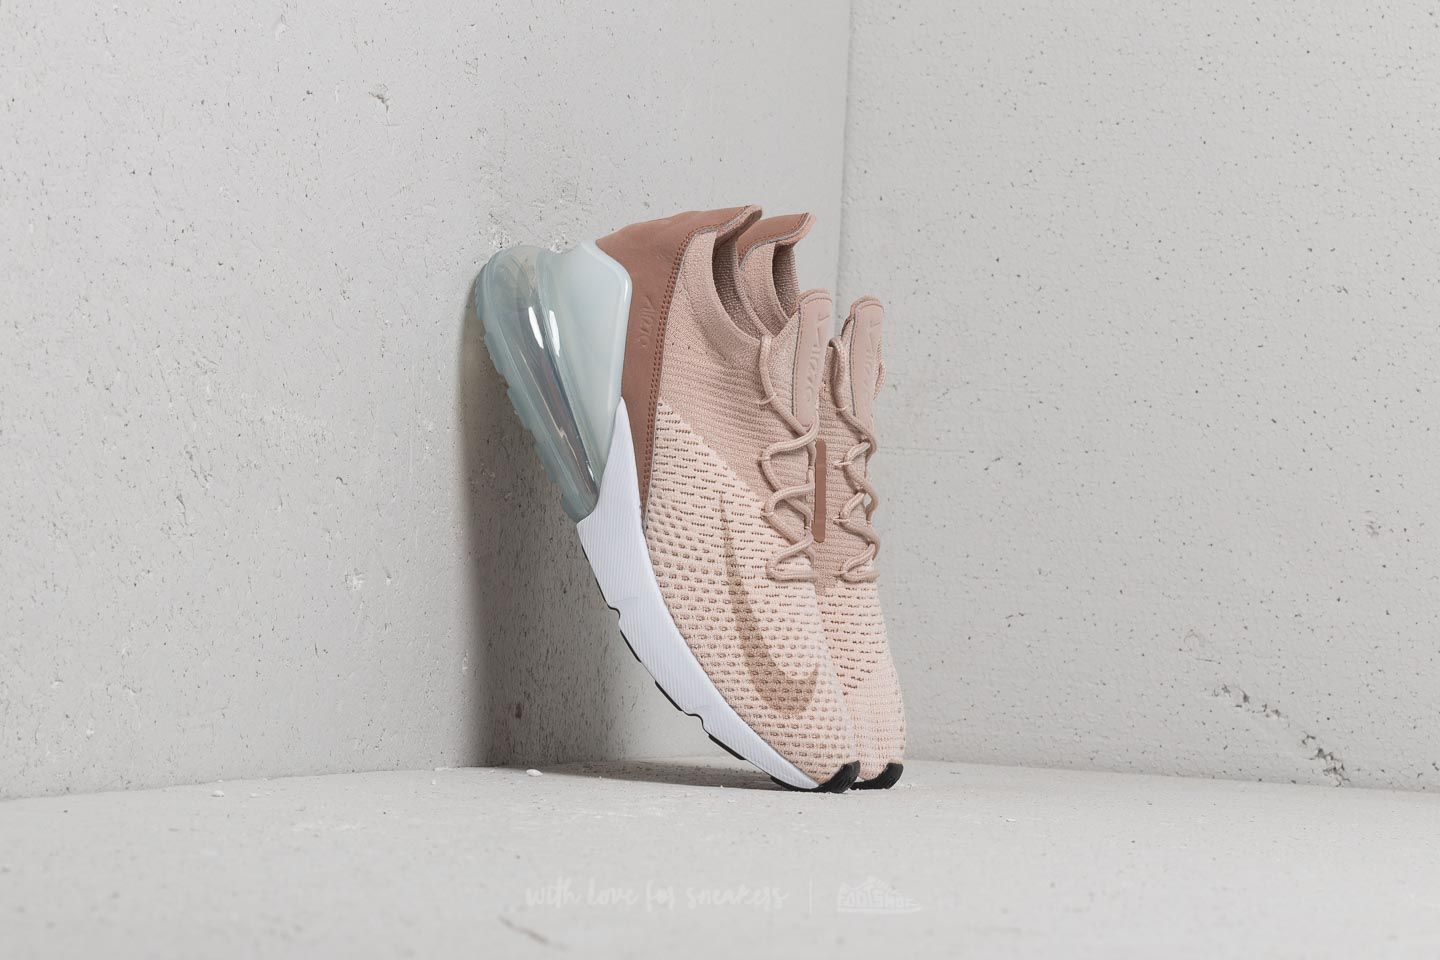 622dea4e32c0 Nike Wmns Air Max 270 Flyknit Guava Ice  Particle Beige